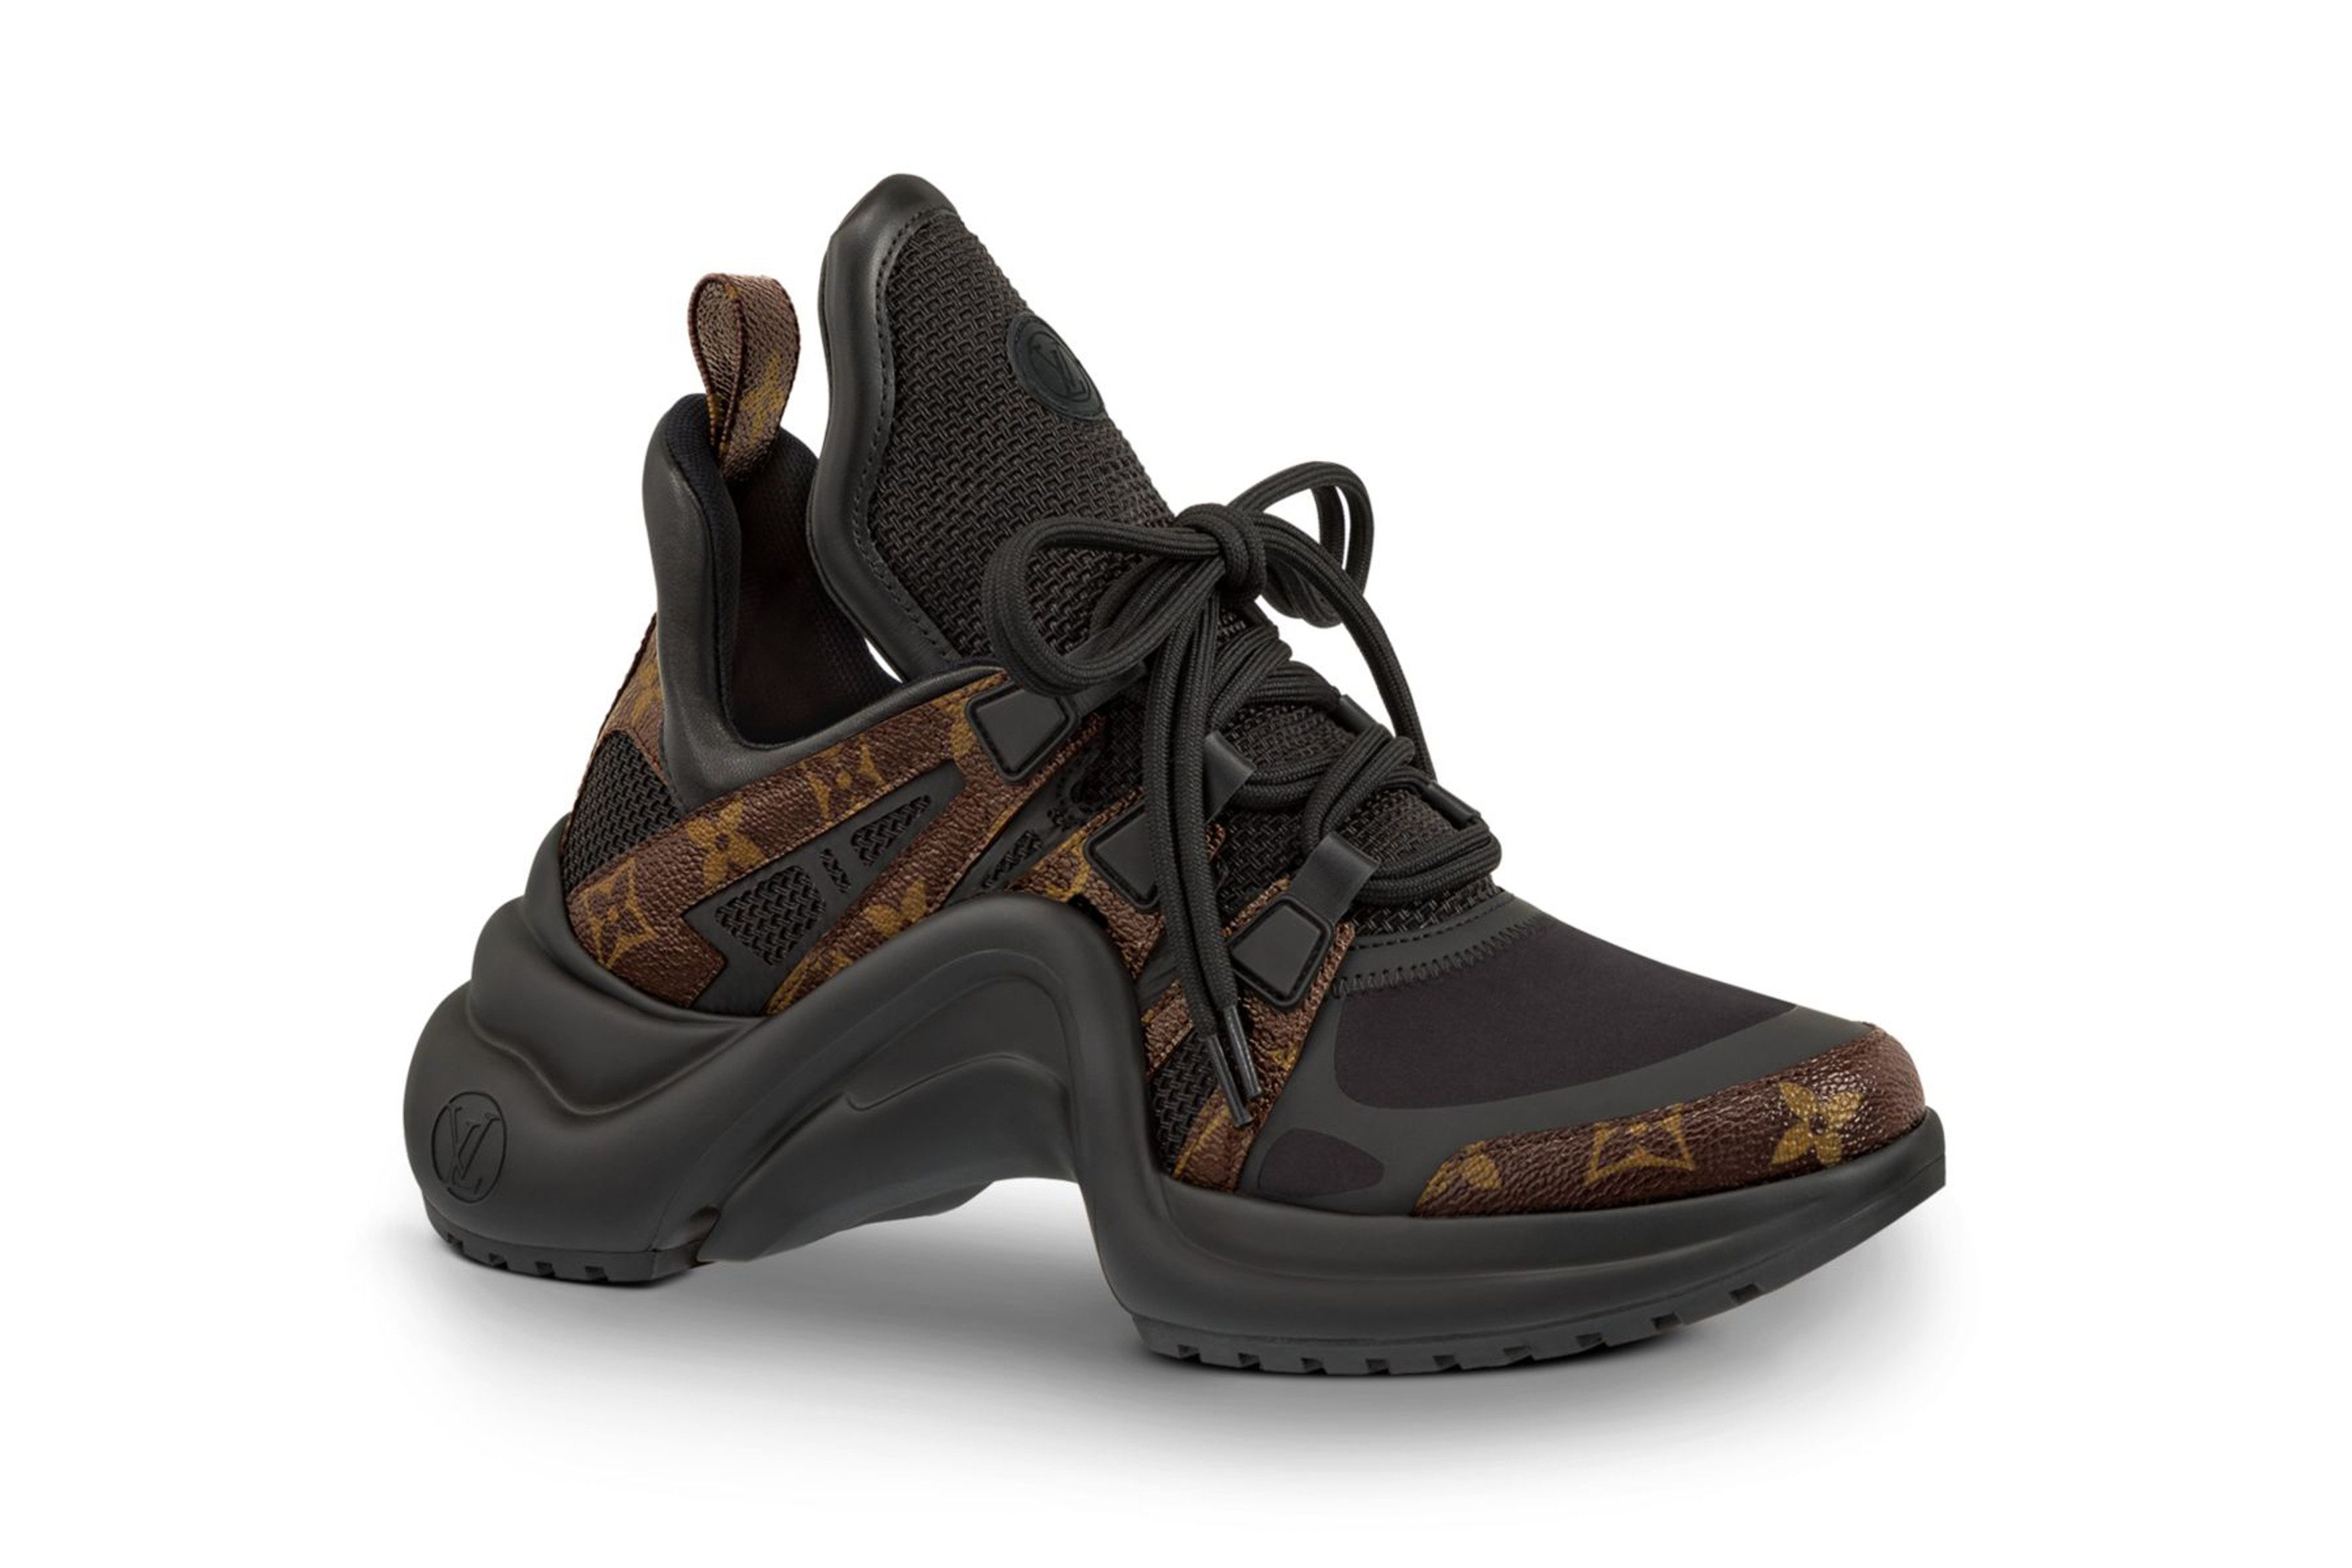 148e83da21 Louis Vuitton's Super Chunky Archlight Sneaker Is Officially Here ...